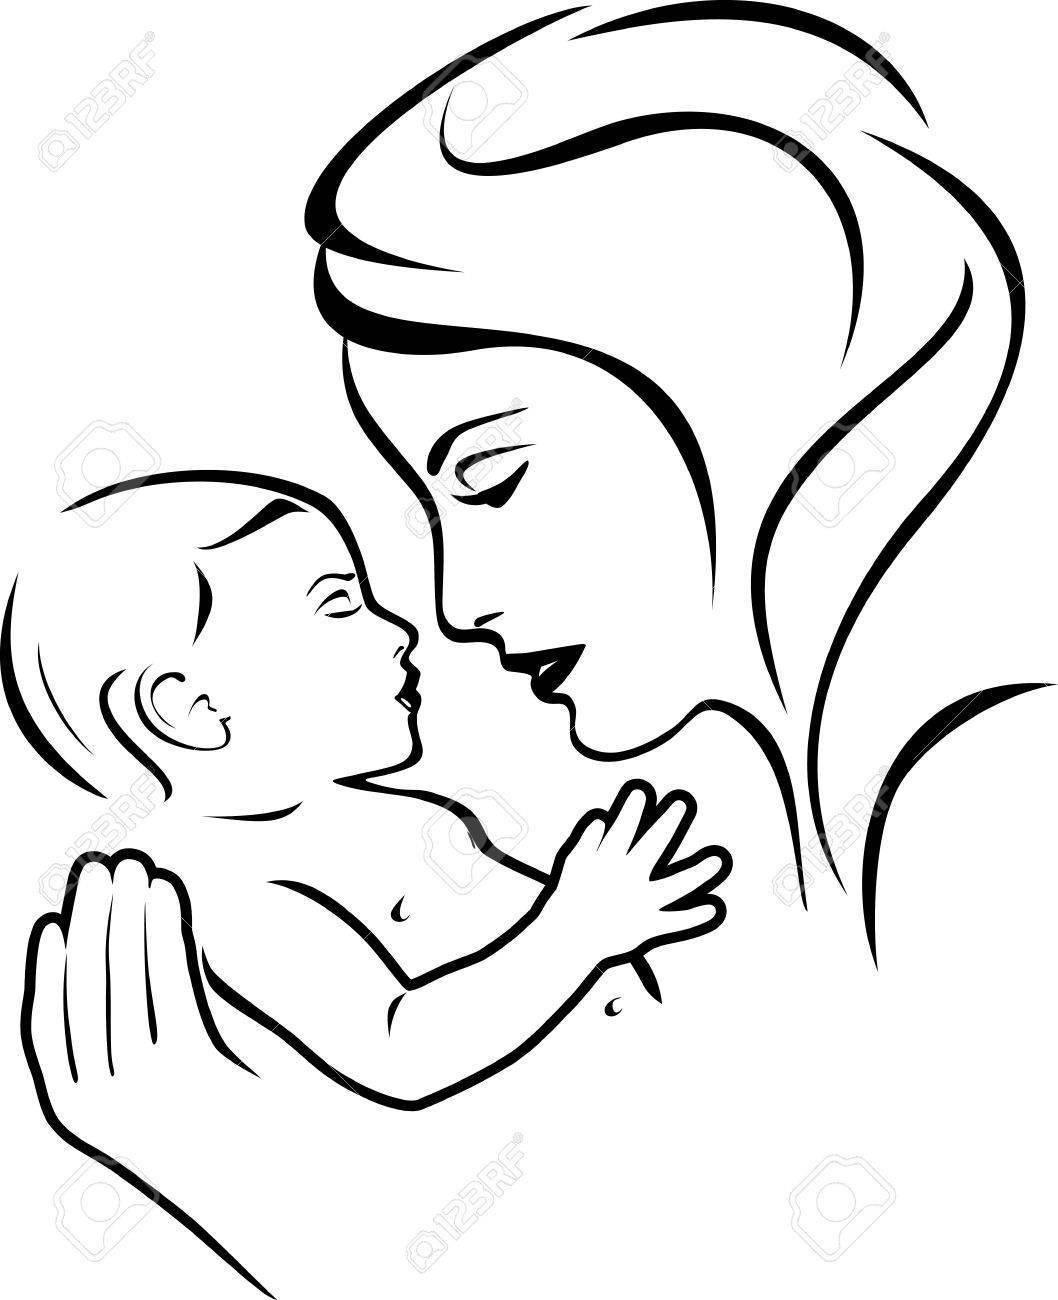 Mother clipart black and white 4 » Clipart Portal.